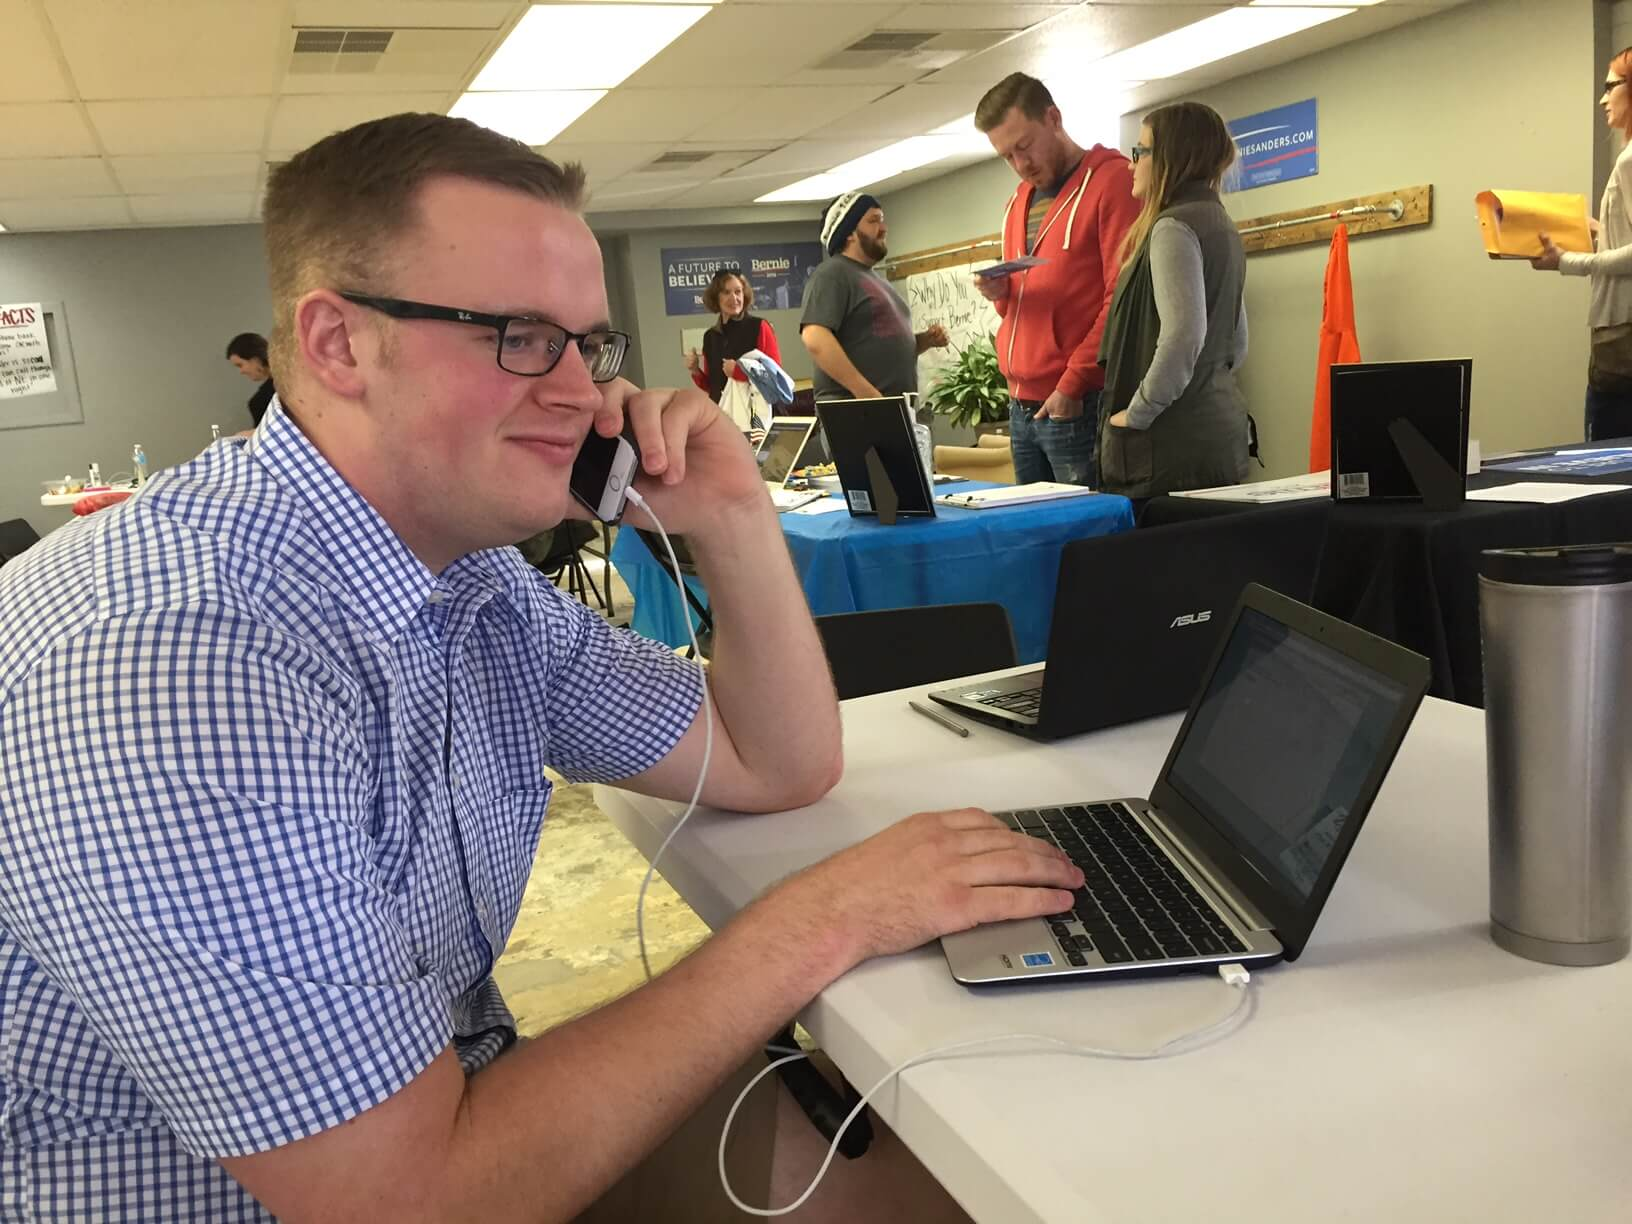 A first-time phone caller in Sanders' Omaha office